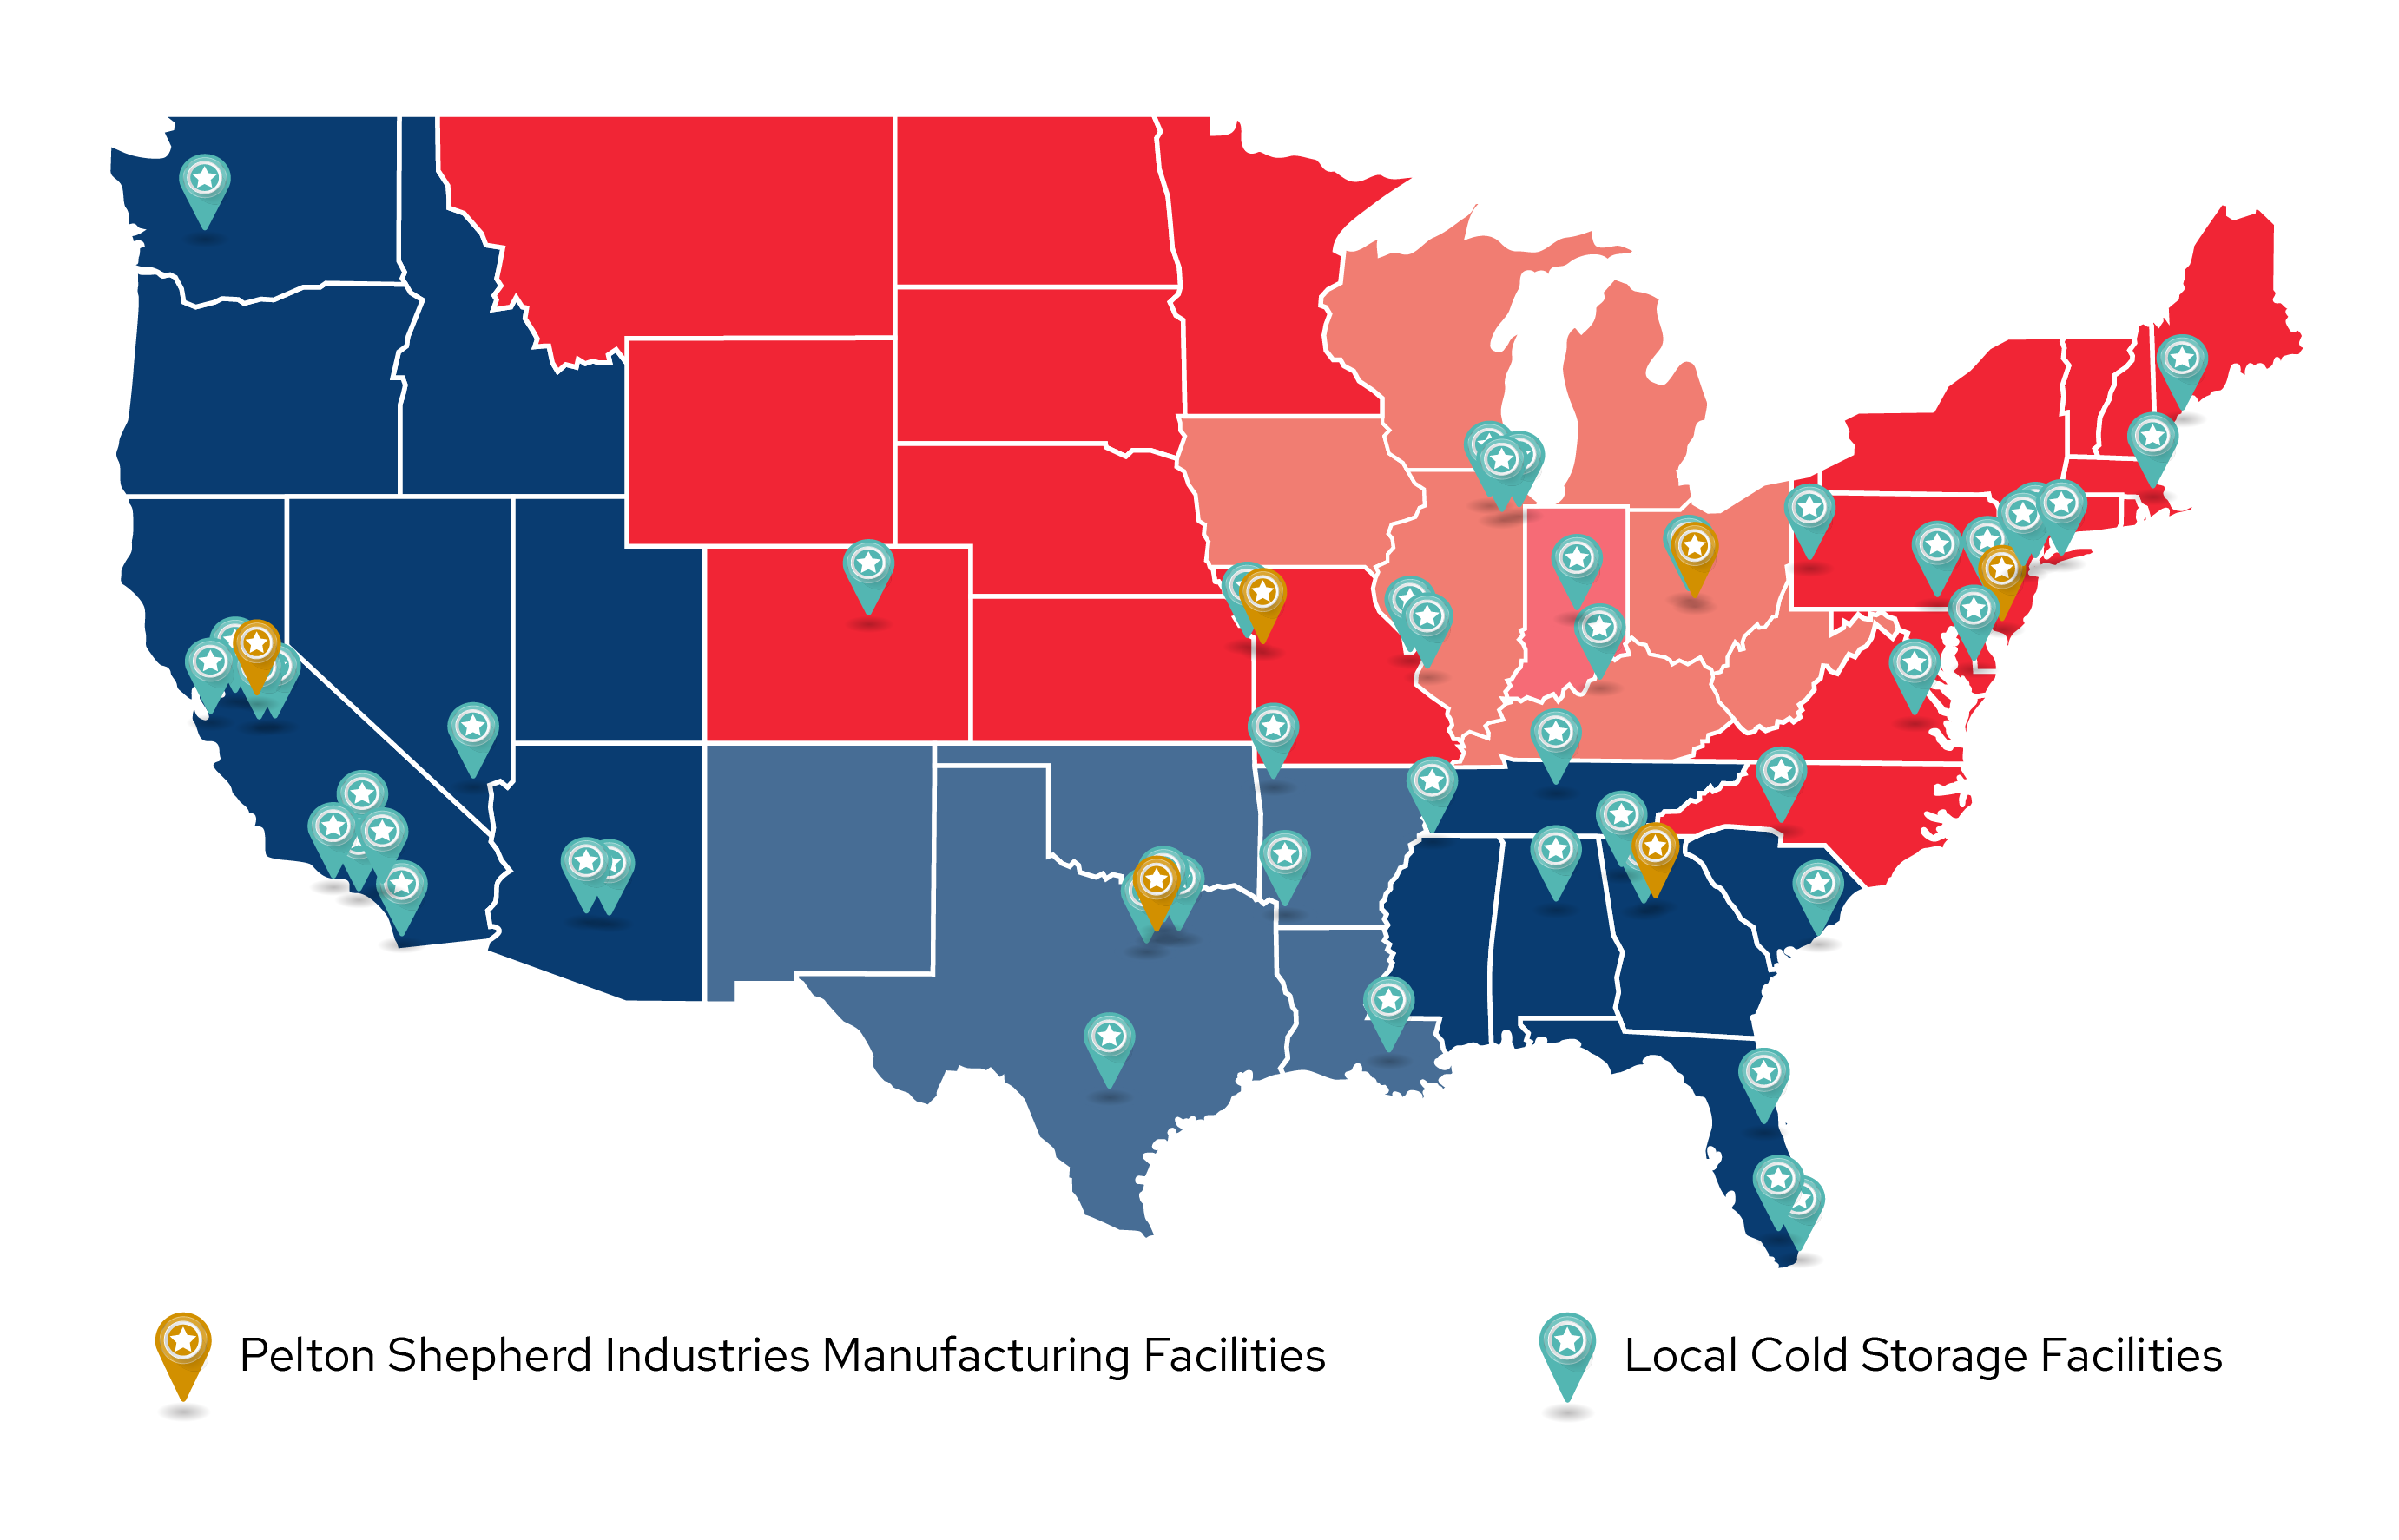 Cold Chain Storage Locations Near Me